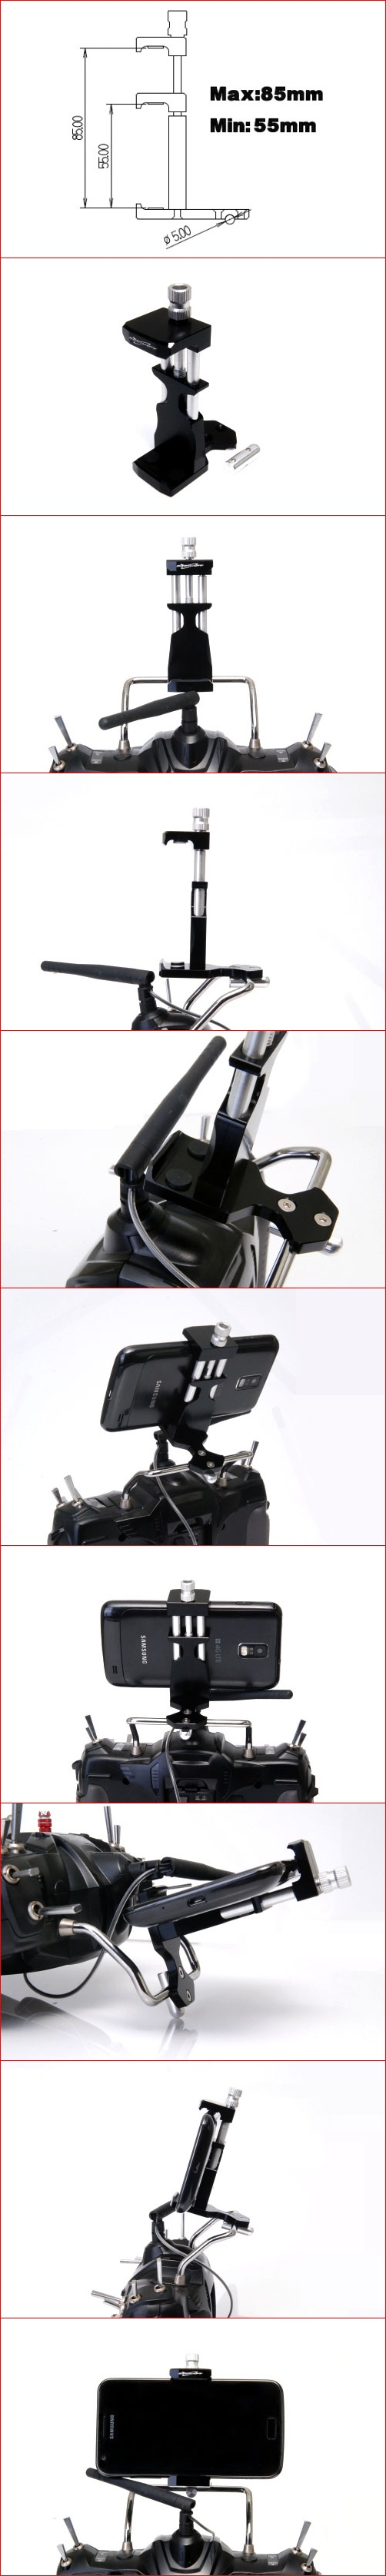 Mobile Grip for transmitters